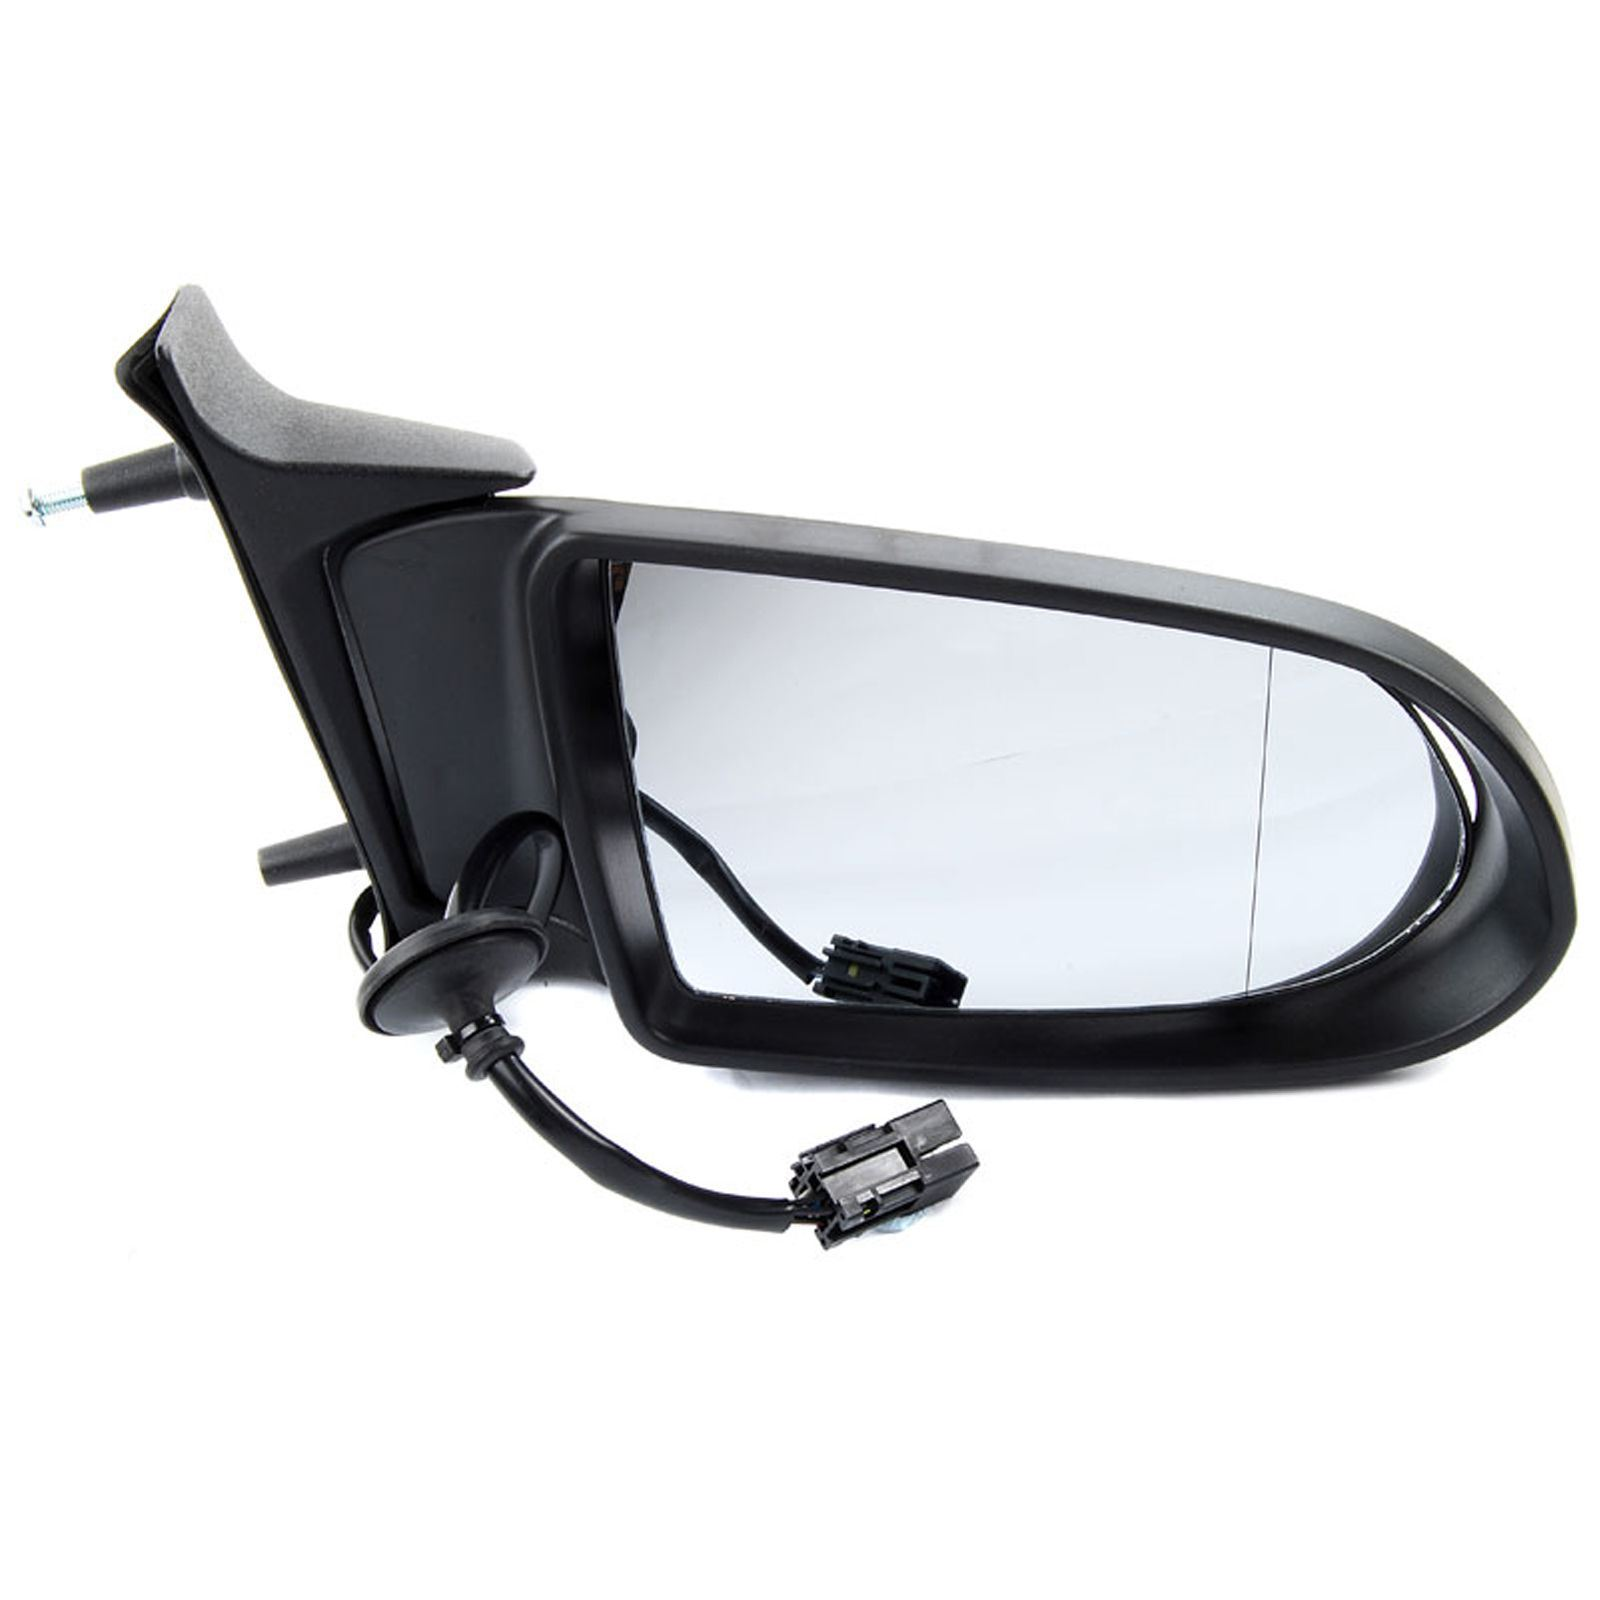 REPLACEMENT MIRROR GLASS Vauxhall Zafira 99-/>05 RH